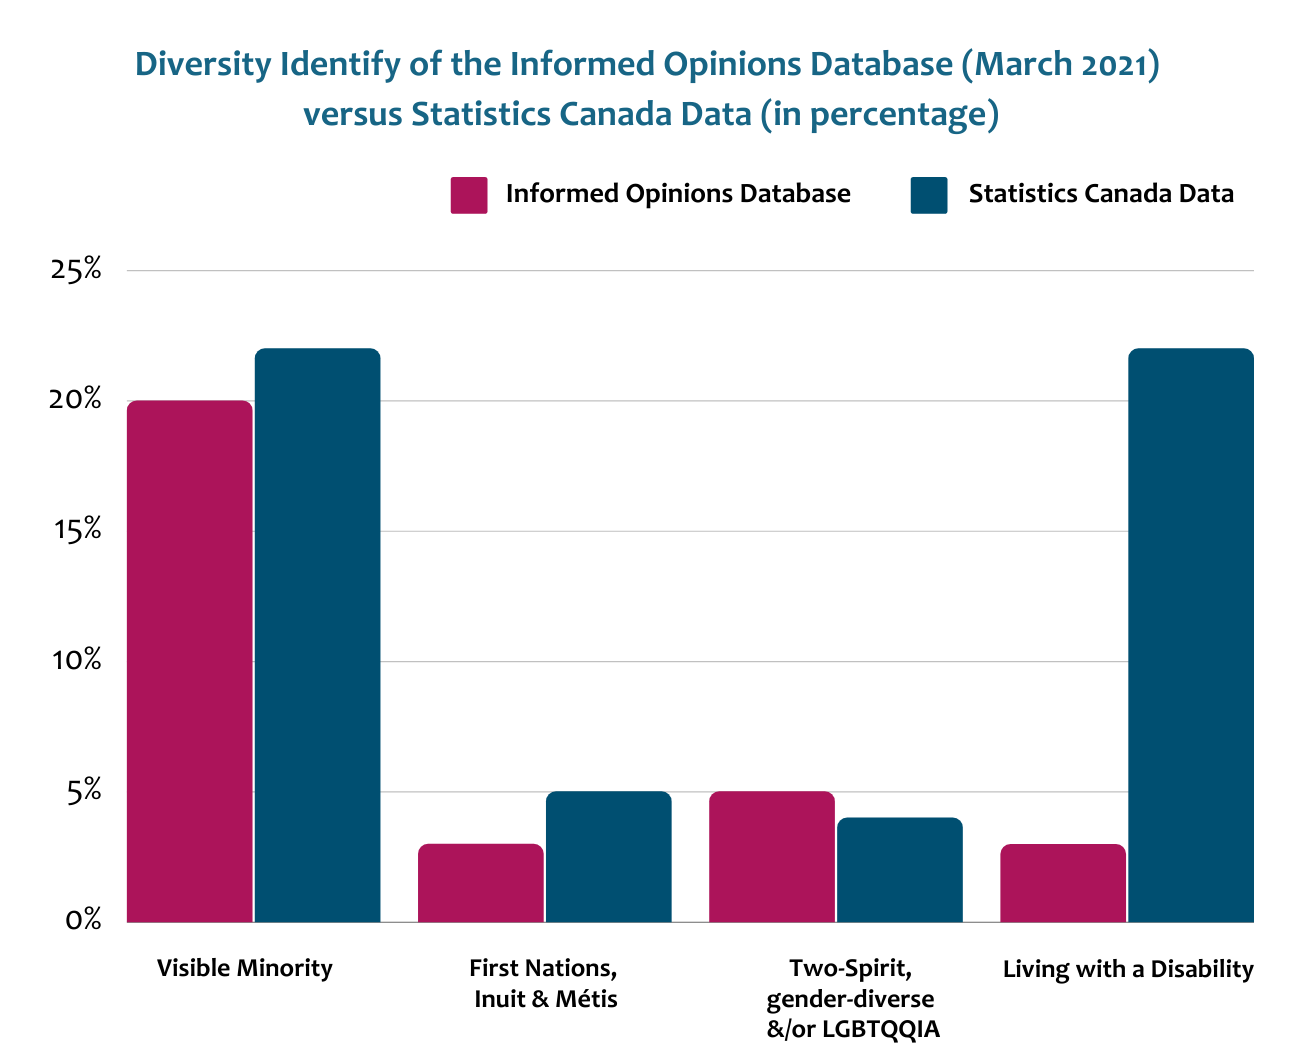 Bar graph depicting diversity identity of the Informed Opinions database as of March 2021 versus Statistics Canada data